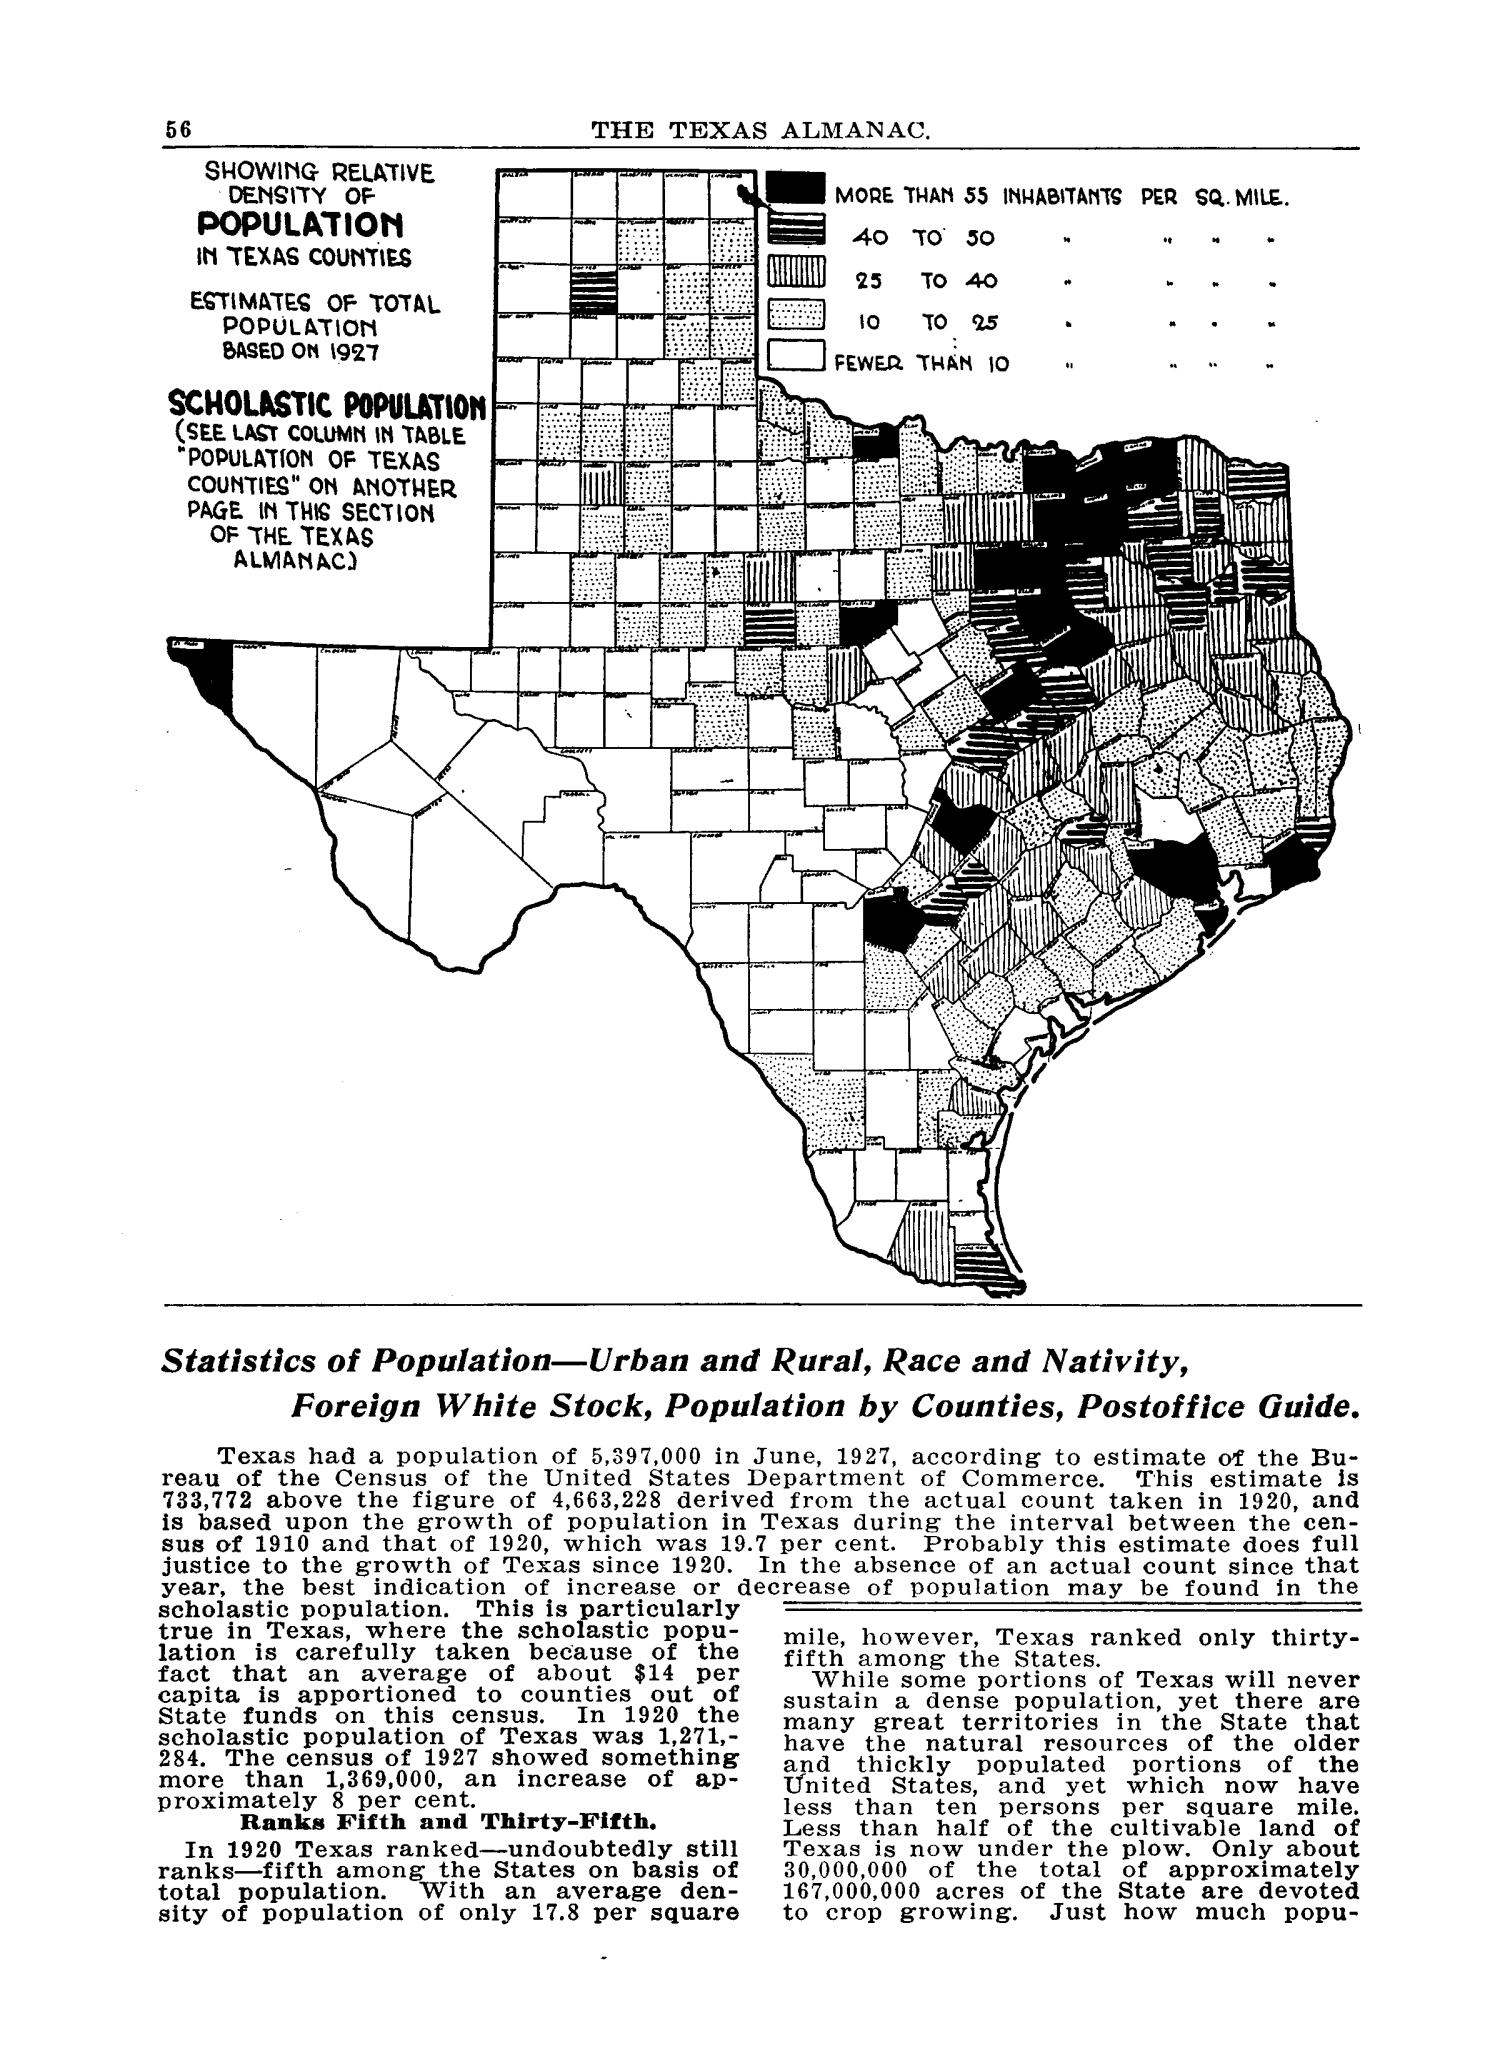 The 1928 Texas Almanac and State Industrial Guide                                                                                                      56